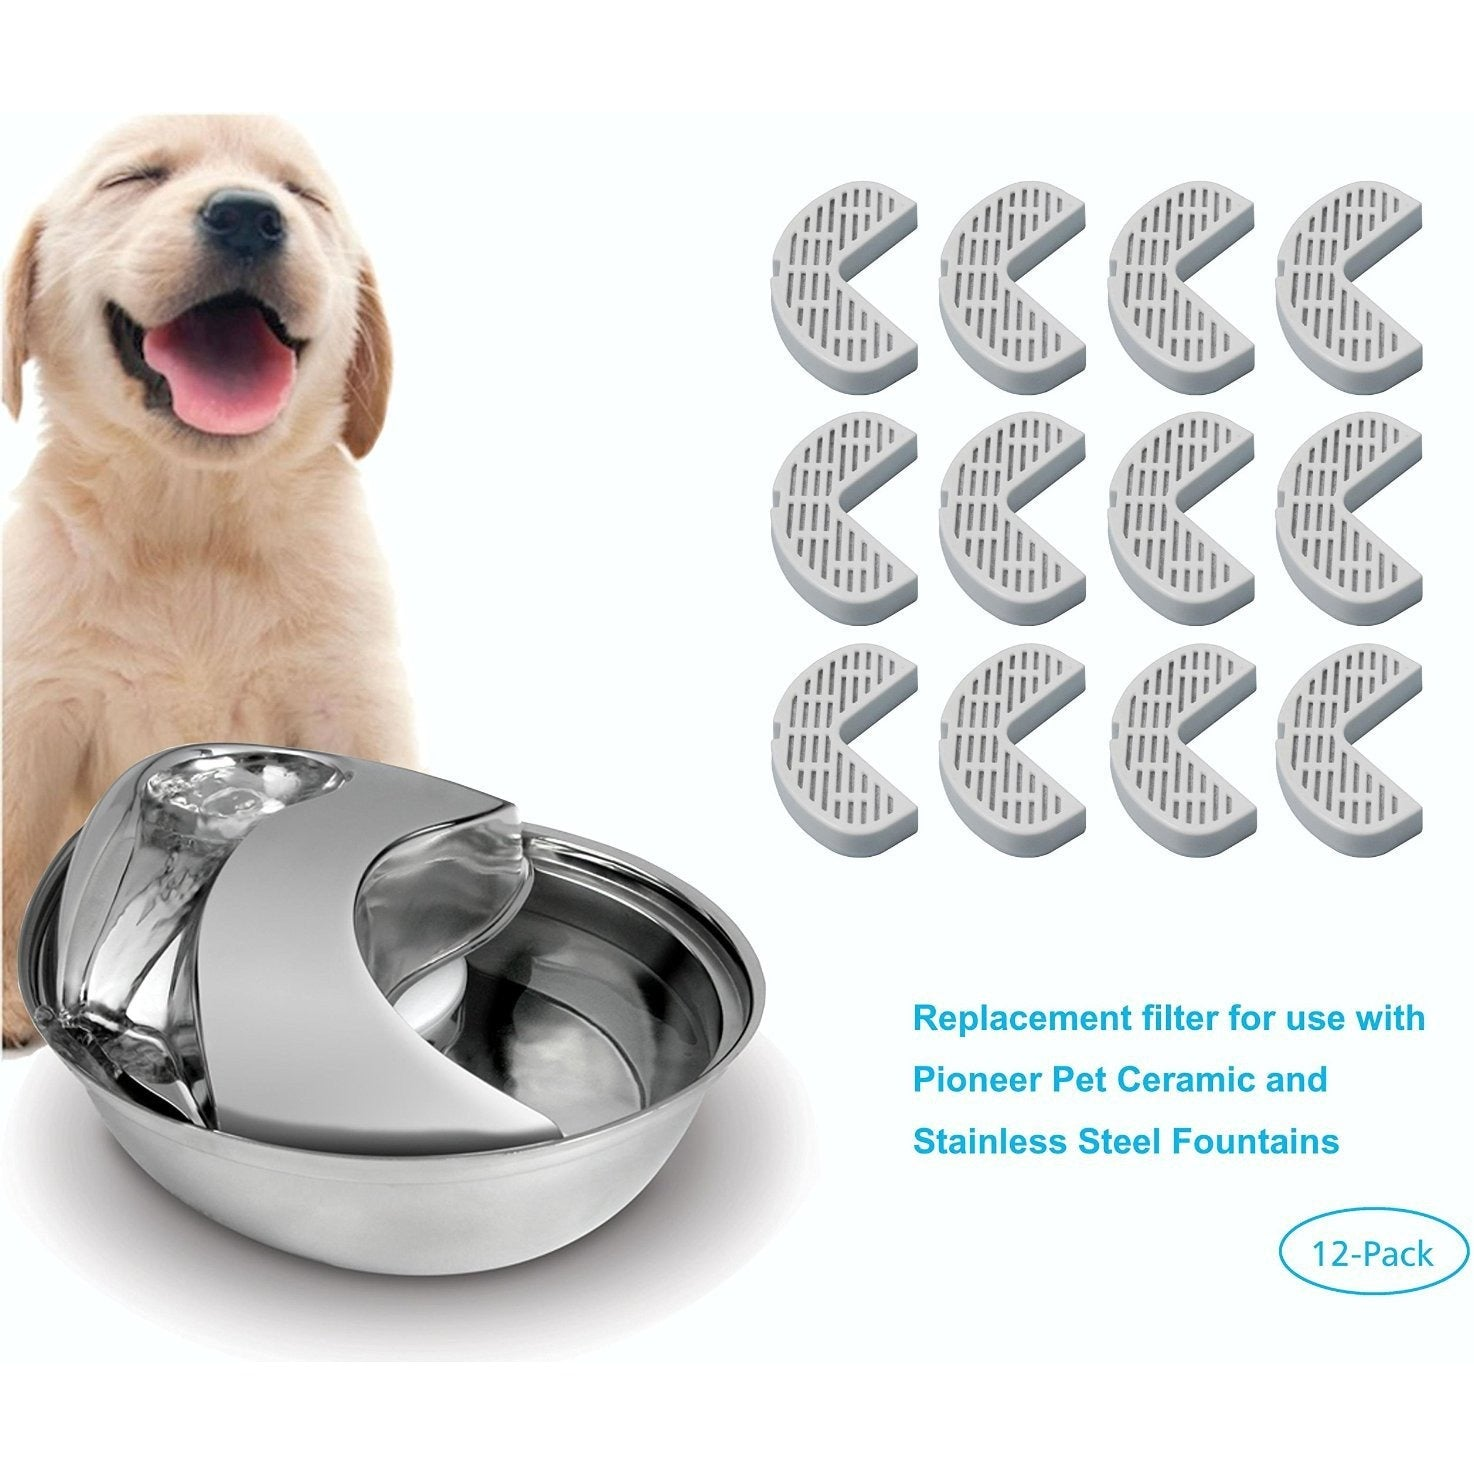 Filters for Pioneer Pet Ceramic